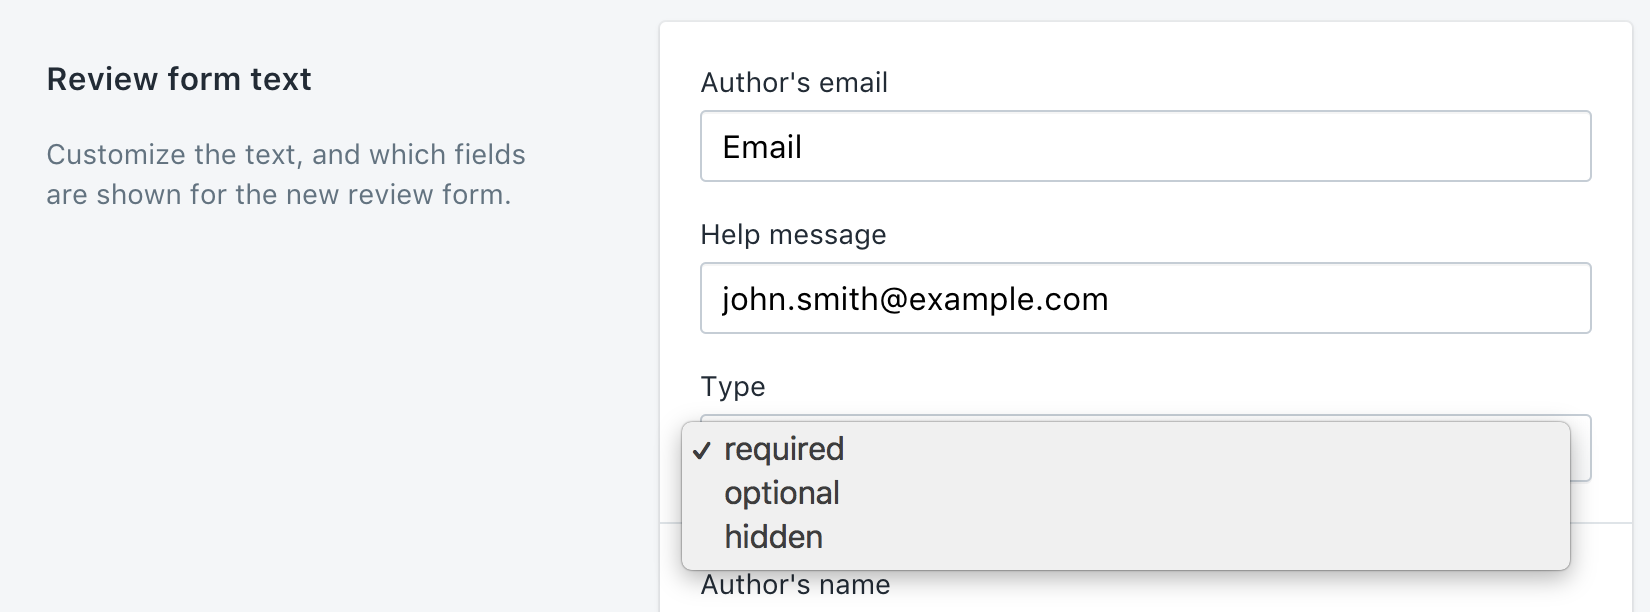 Select type for form fields